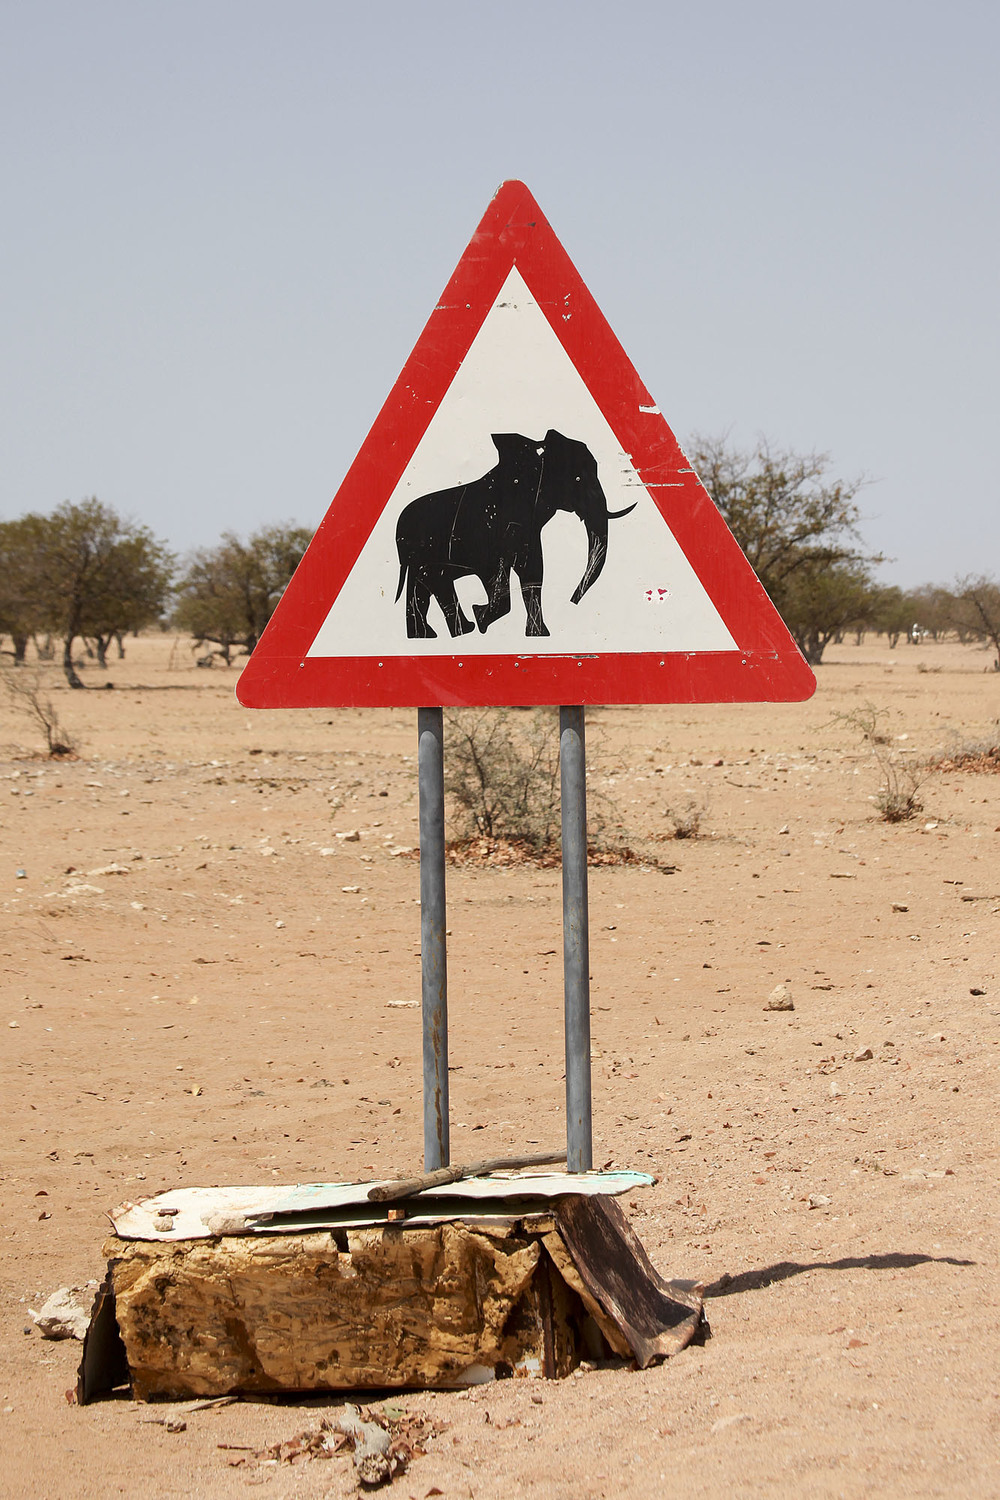 Watch out for Elephants